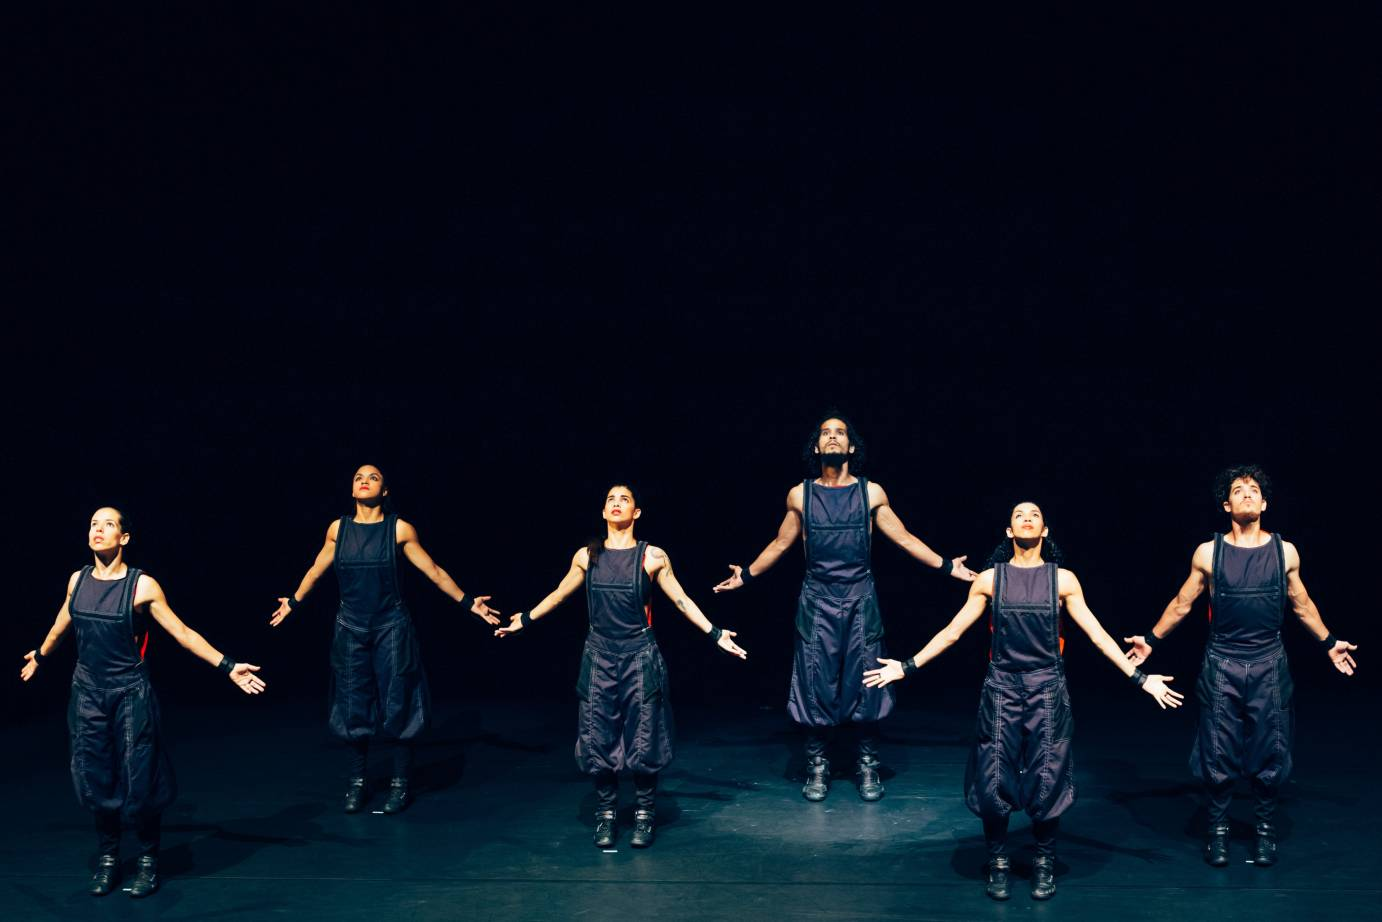 Six dancers extends their arms to the side while looking tough